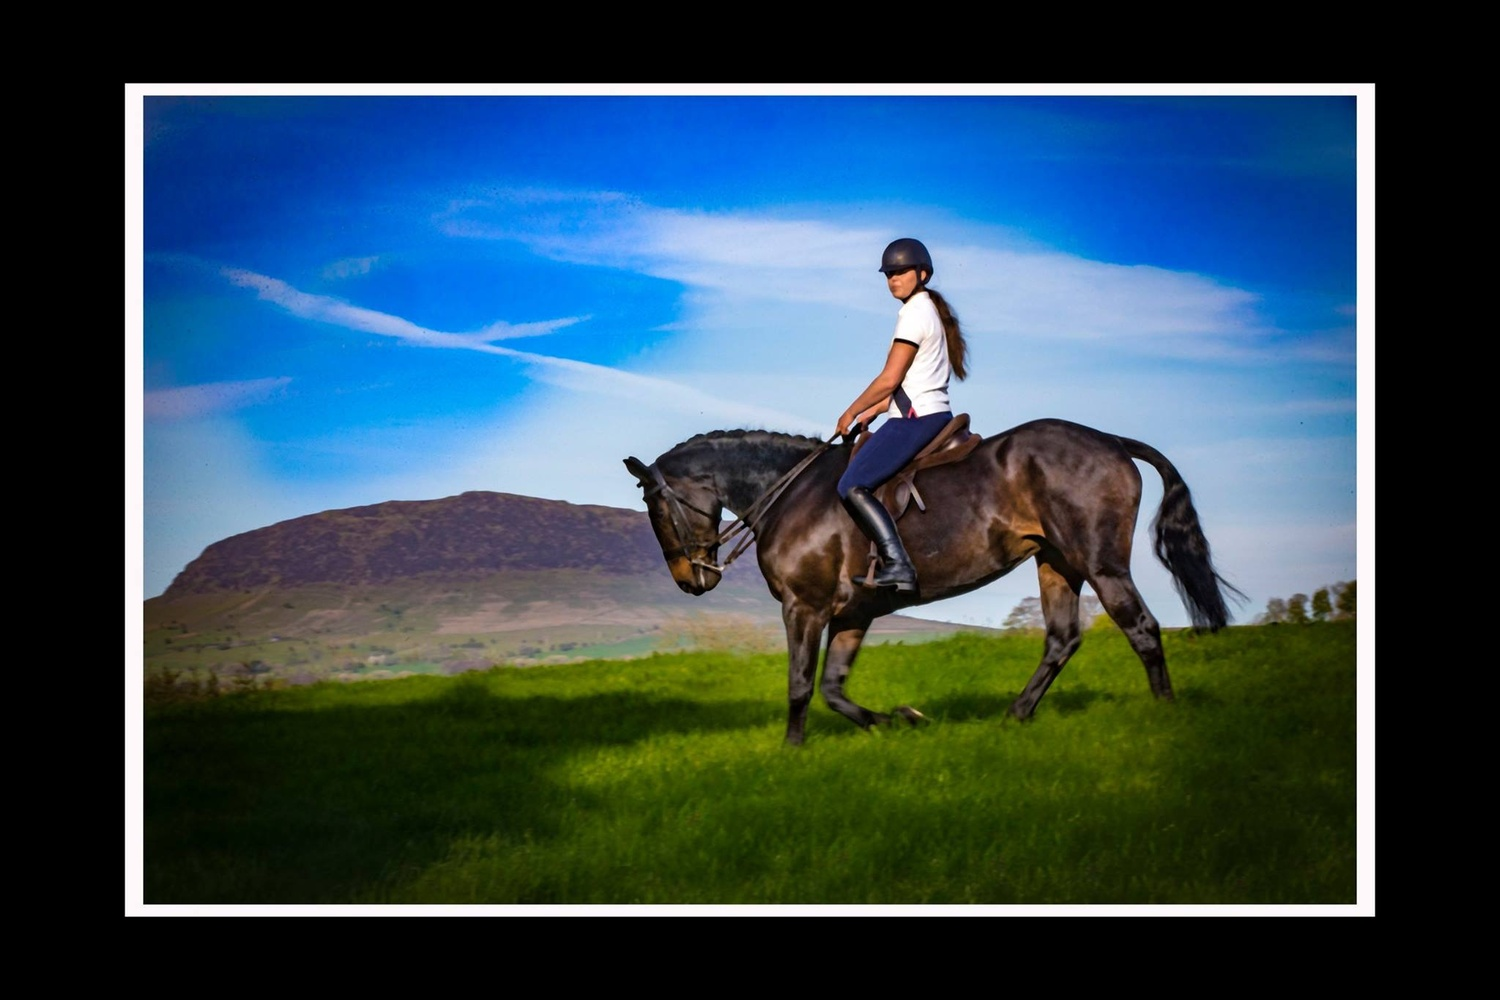 Slemish mountain and Kathryn  by Jim McConnell